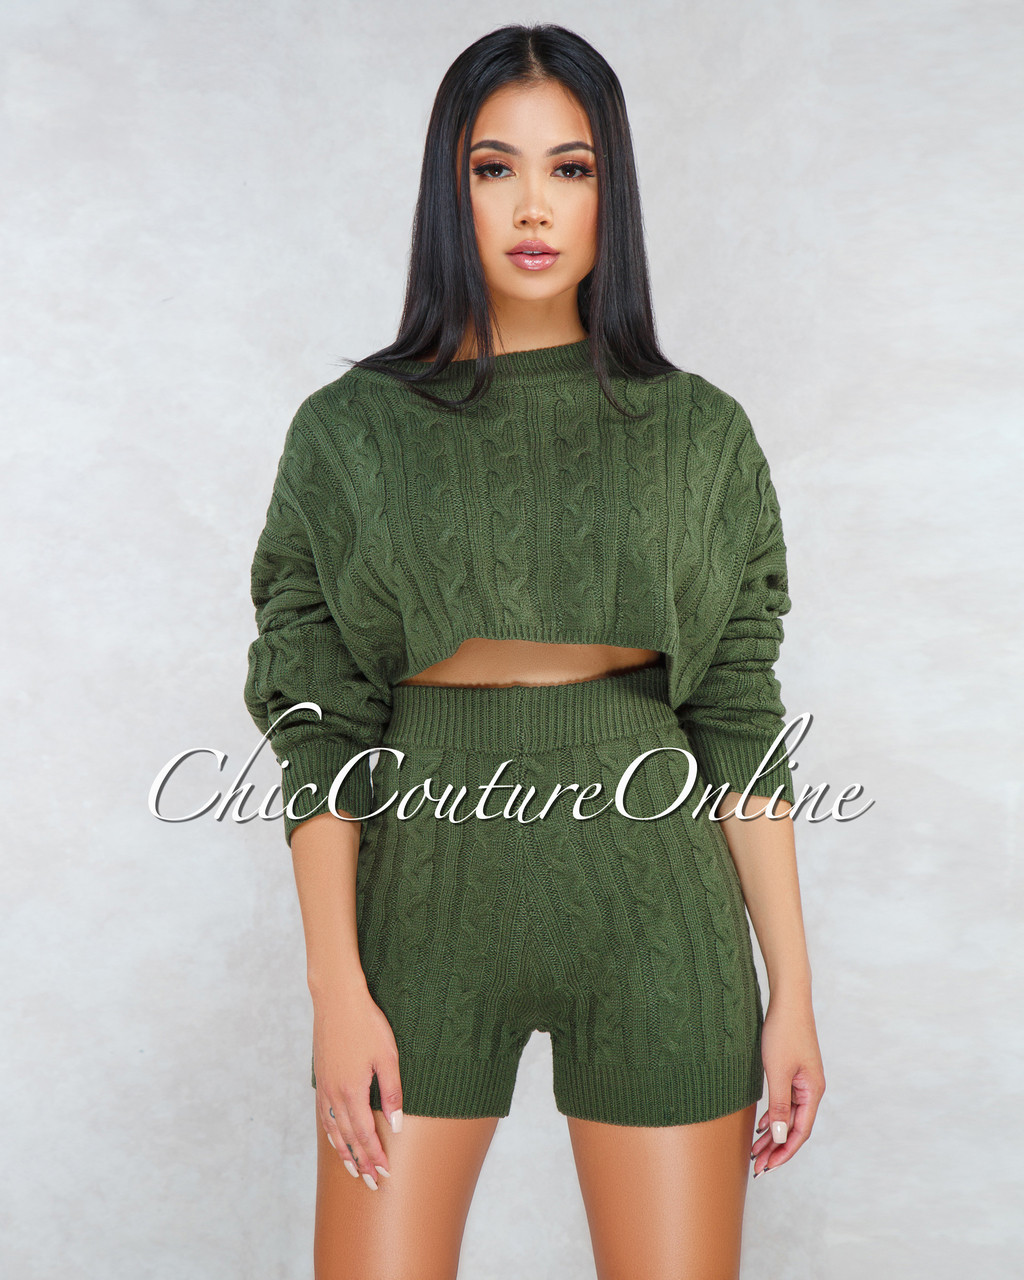 51723c3e7 Samera Military Green Cable Knit Sweater Shorts Two Piece Set. Price    60.00. Image 1